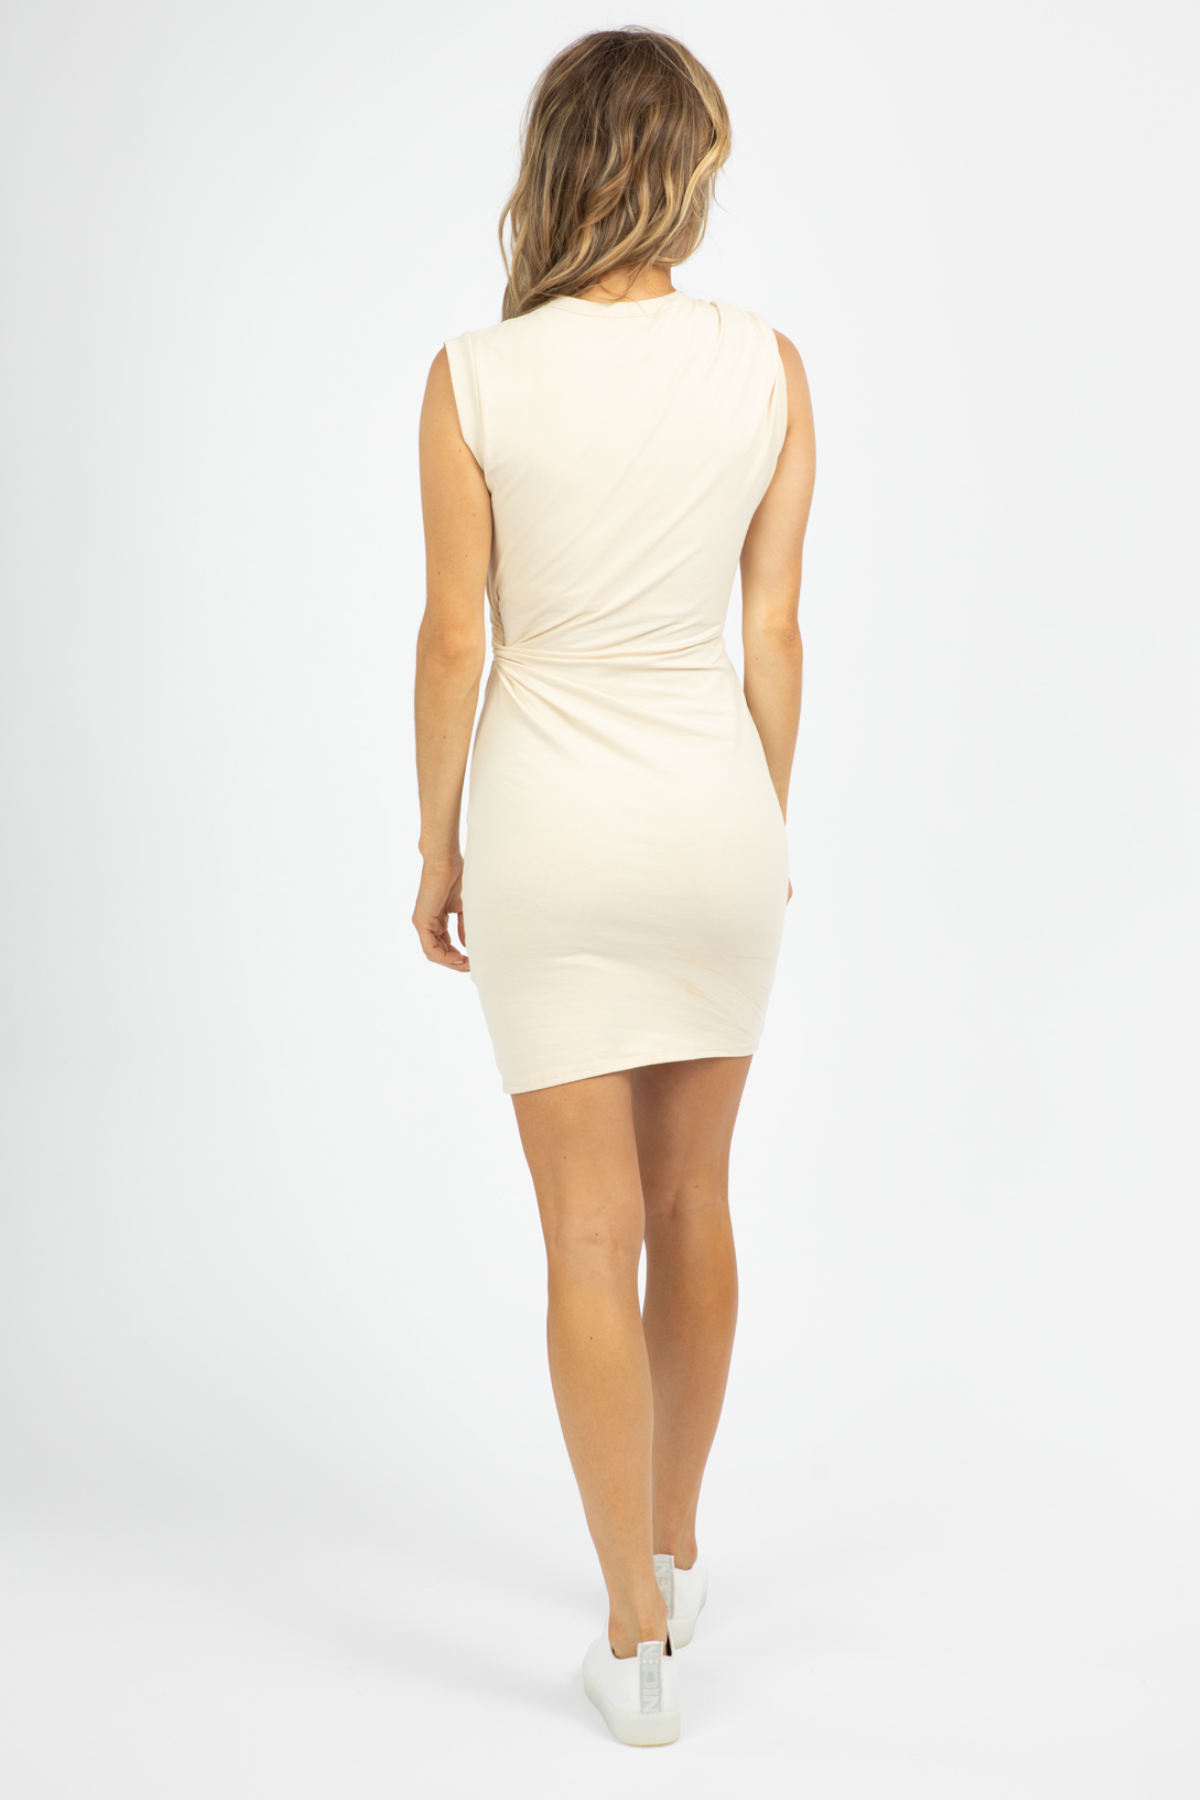 CREAM CUTOUT MINI DRESS